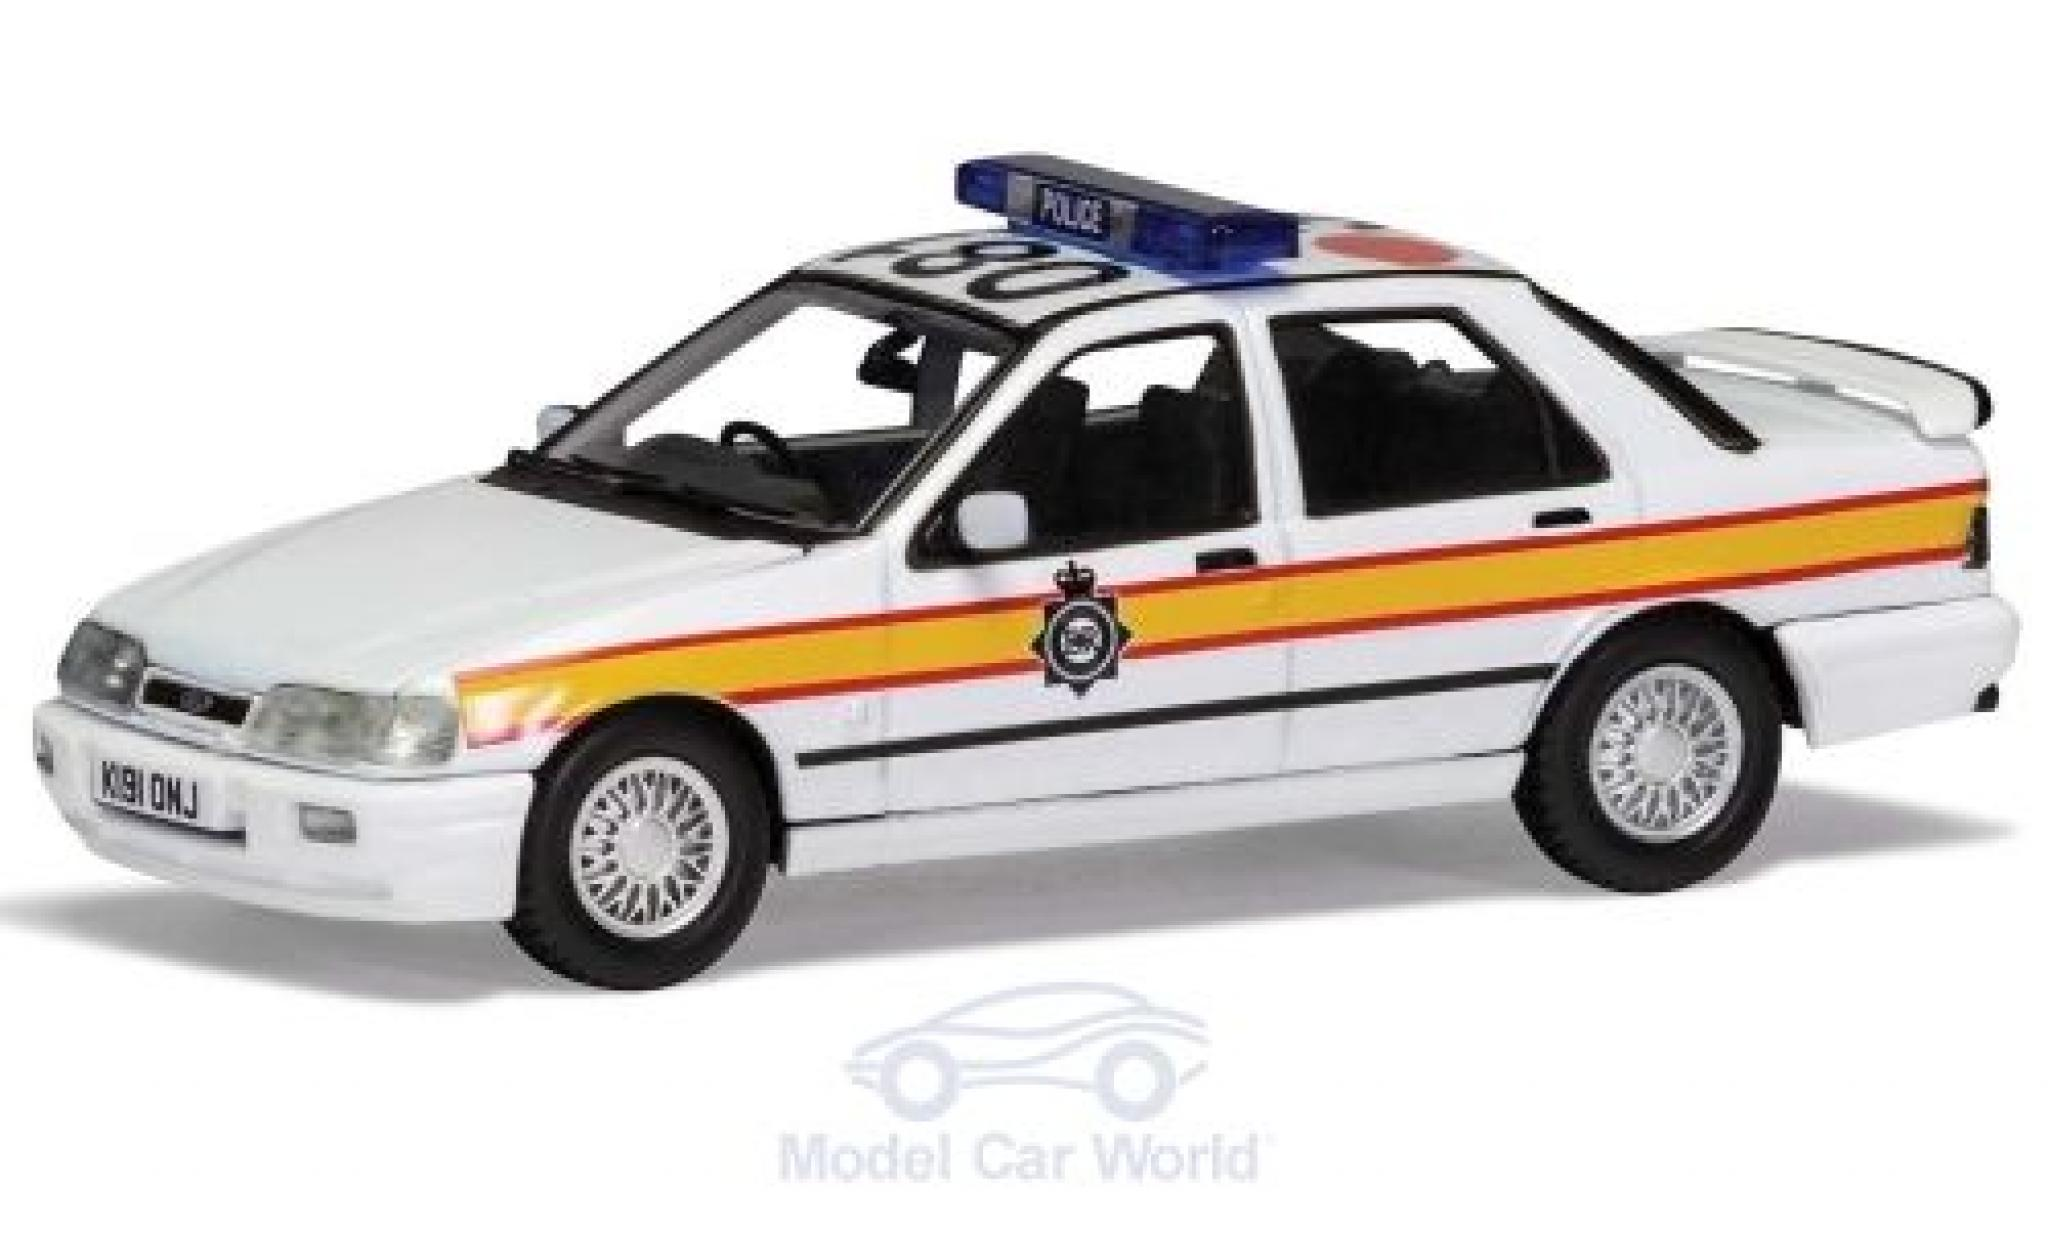 Ford Sierra 1/43 Vanguards Sapphire RS Cosworth 4x4 RHD Sussex Police 1990